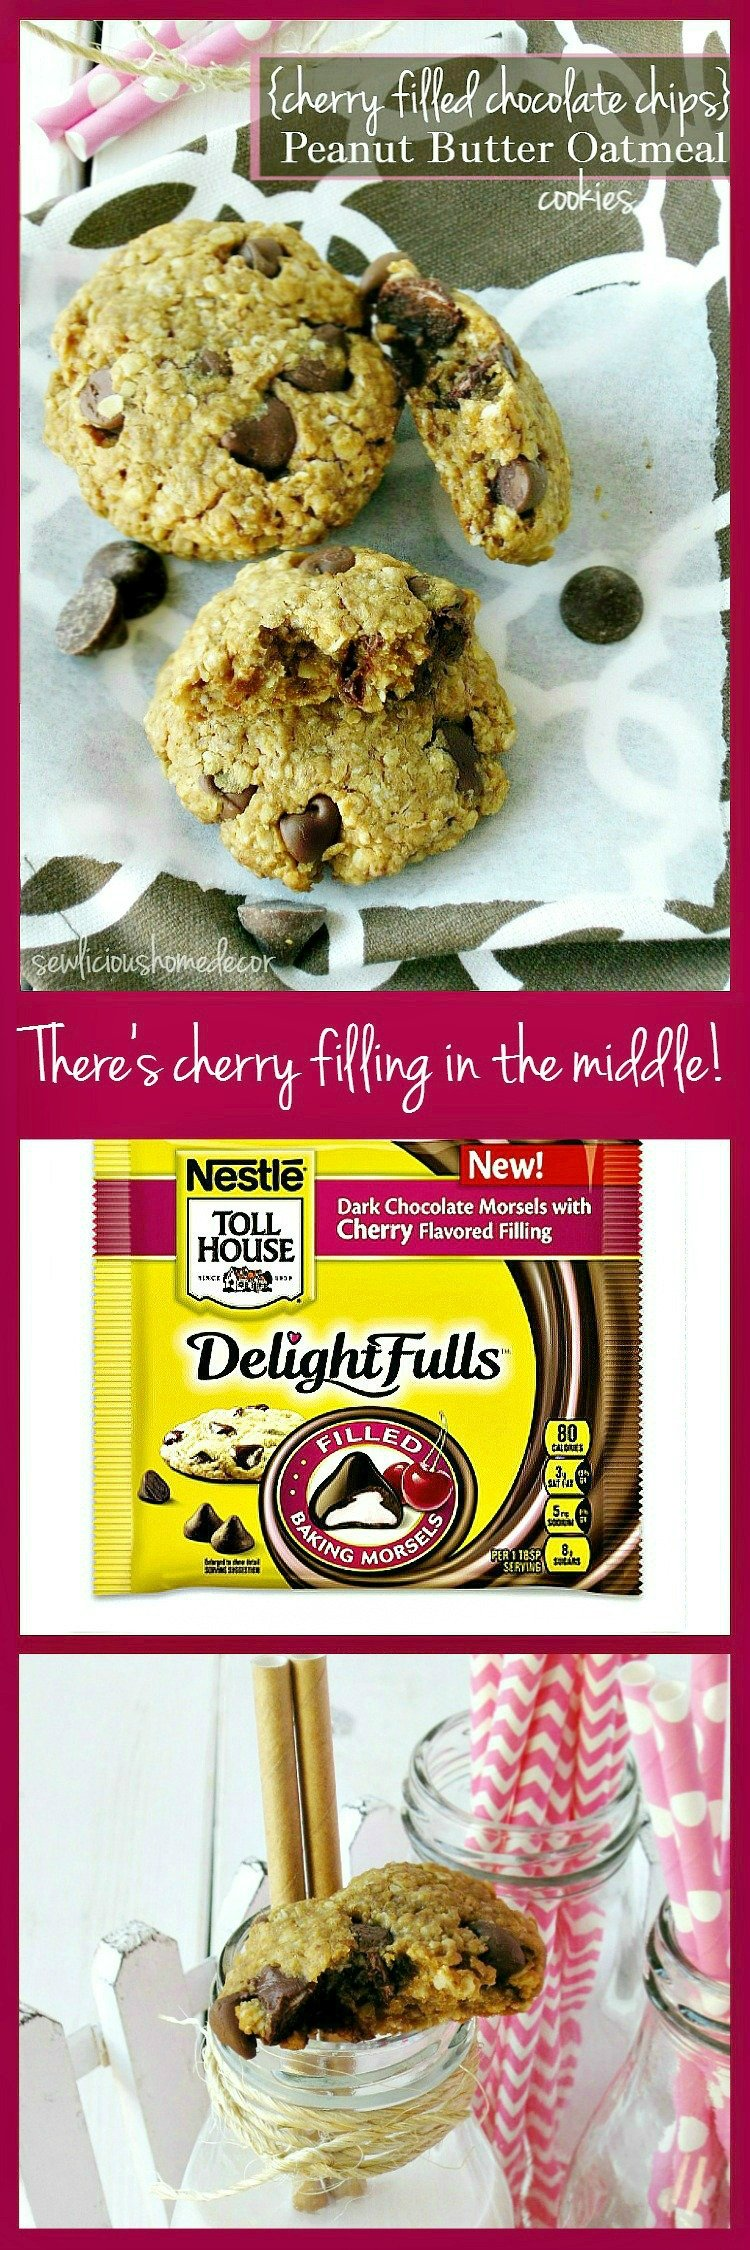 Flourless Peanut Butter and Oatmeal Cherry filled Chocolate Chip cookies sewlicioushomedecor.com